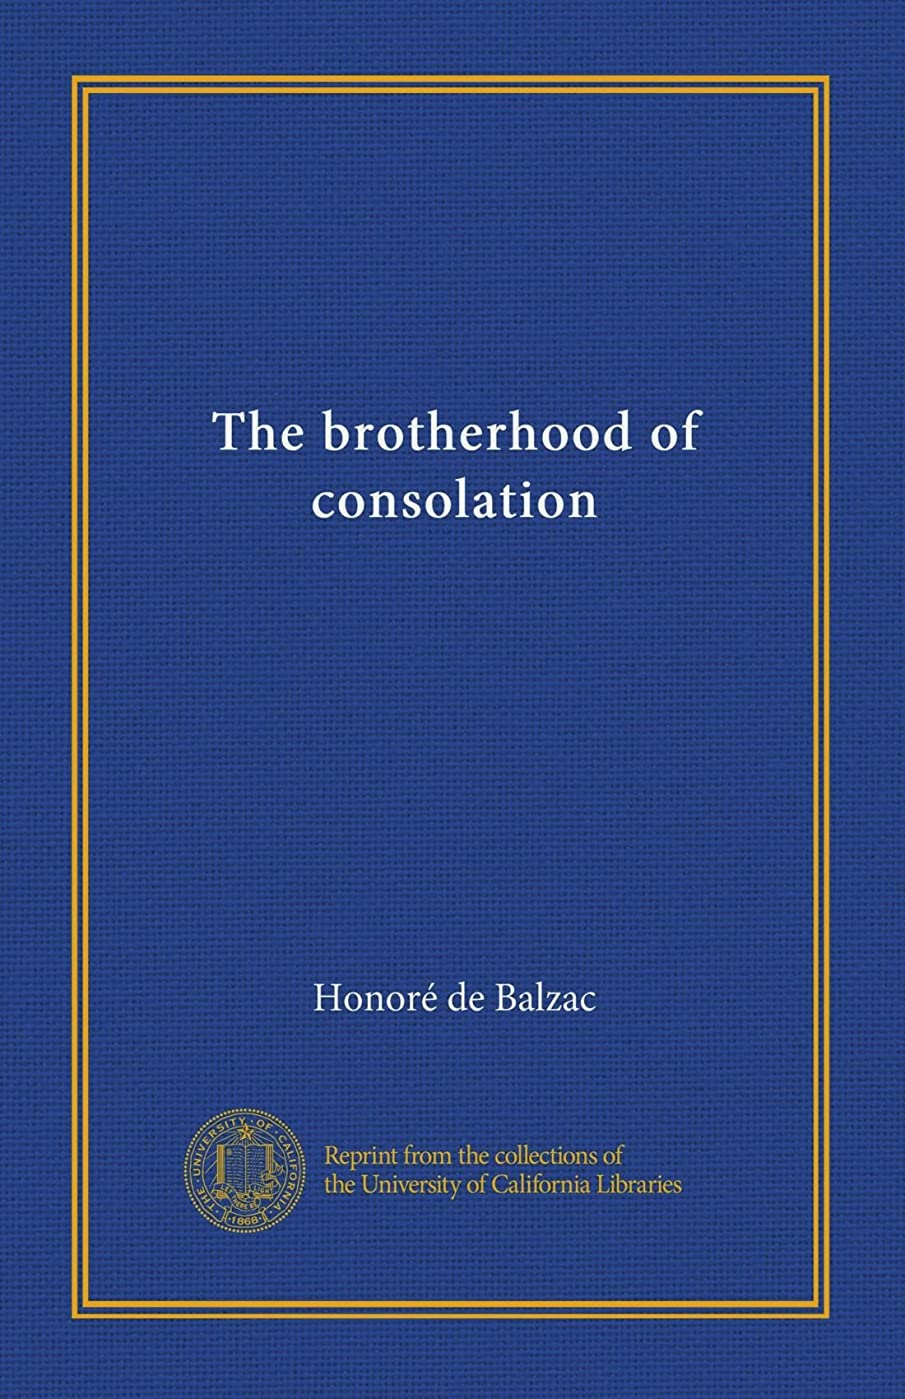 良心アクション大工The brotherhood of consolation